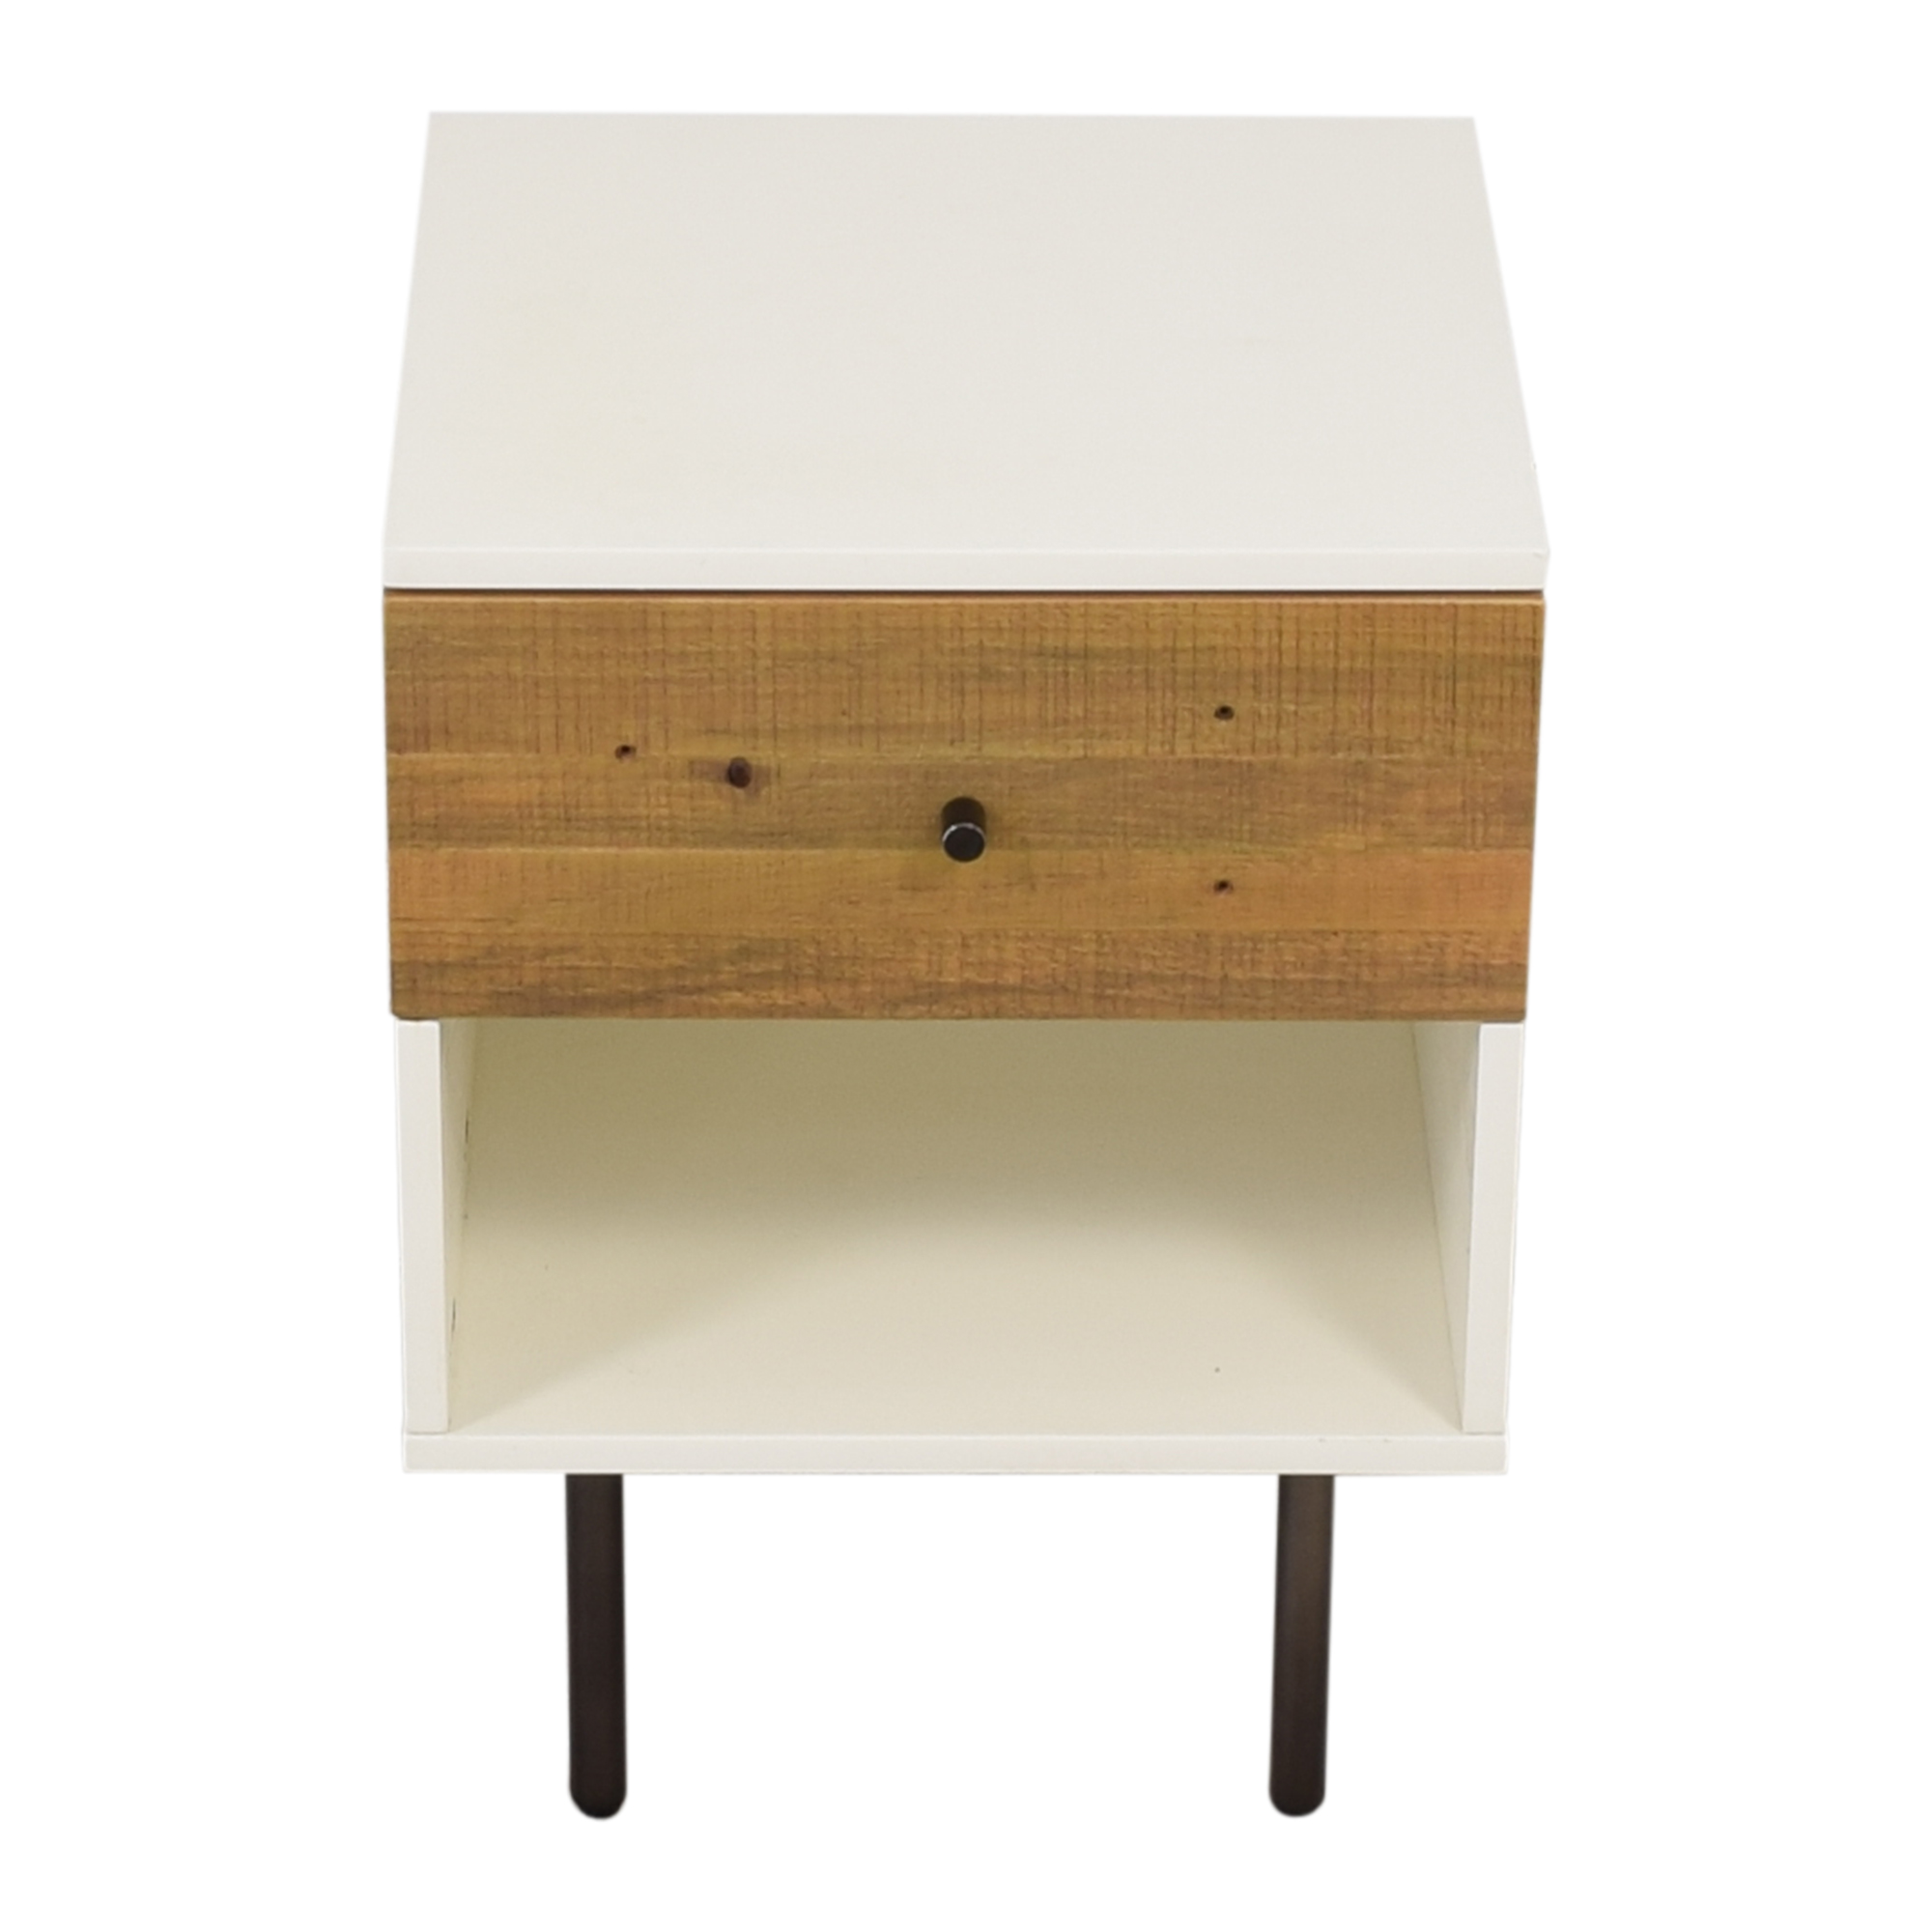 West Elm West Elm Reclaimed Wood & Lacquer Nightstand second hand